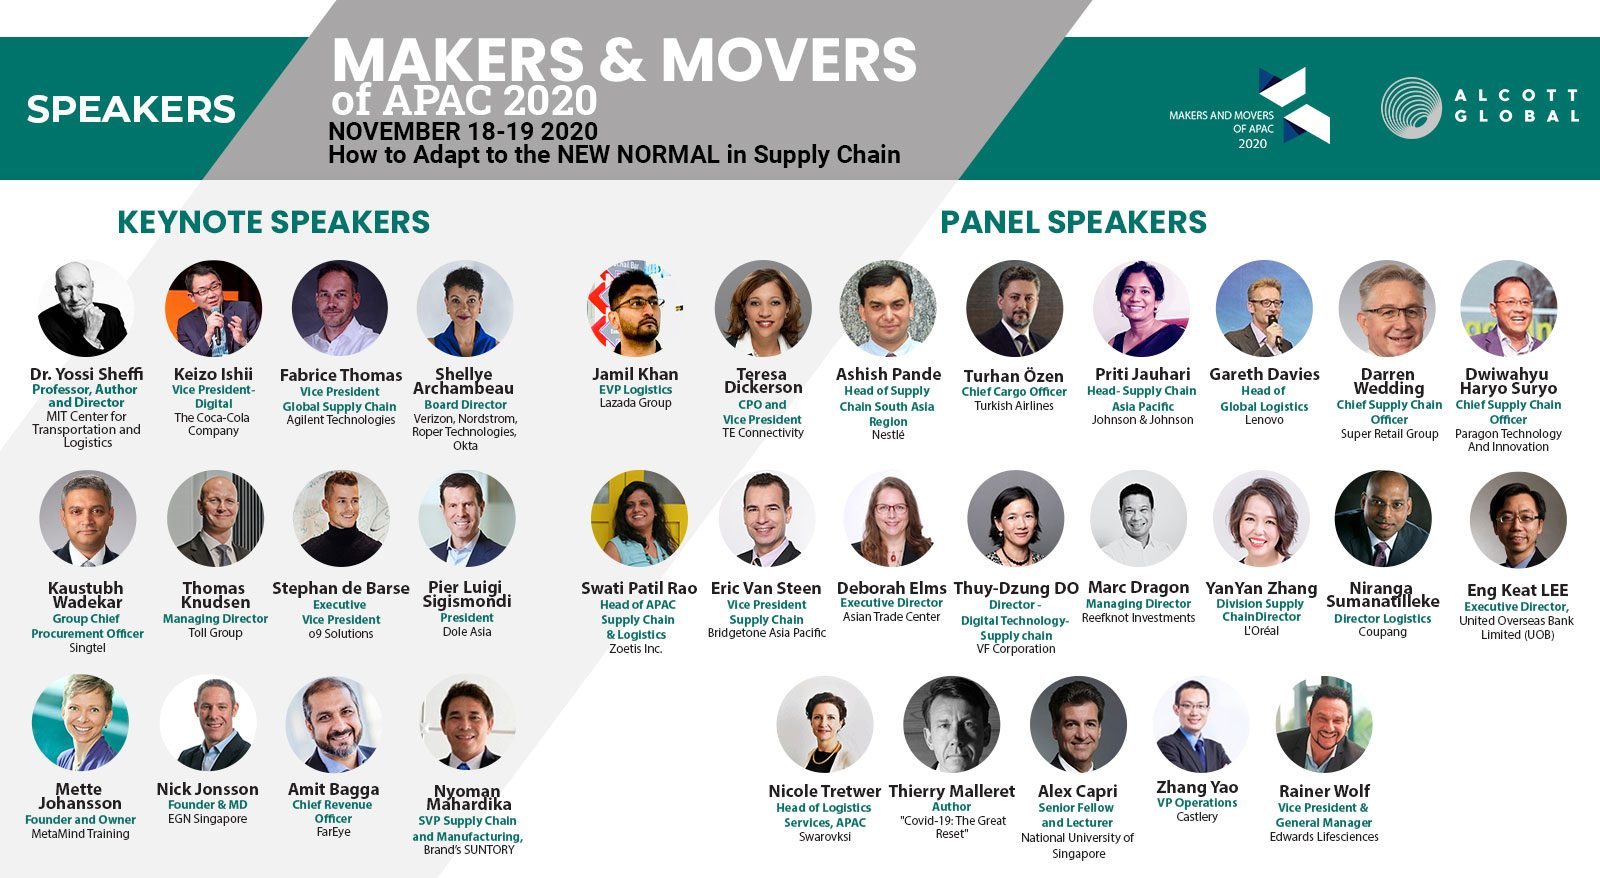 Makers-and-Movers-2020-Keynotes-Panels-Featured-Image